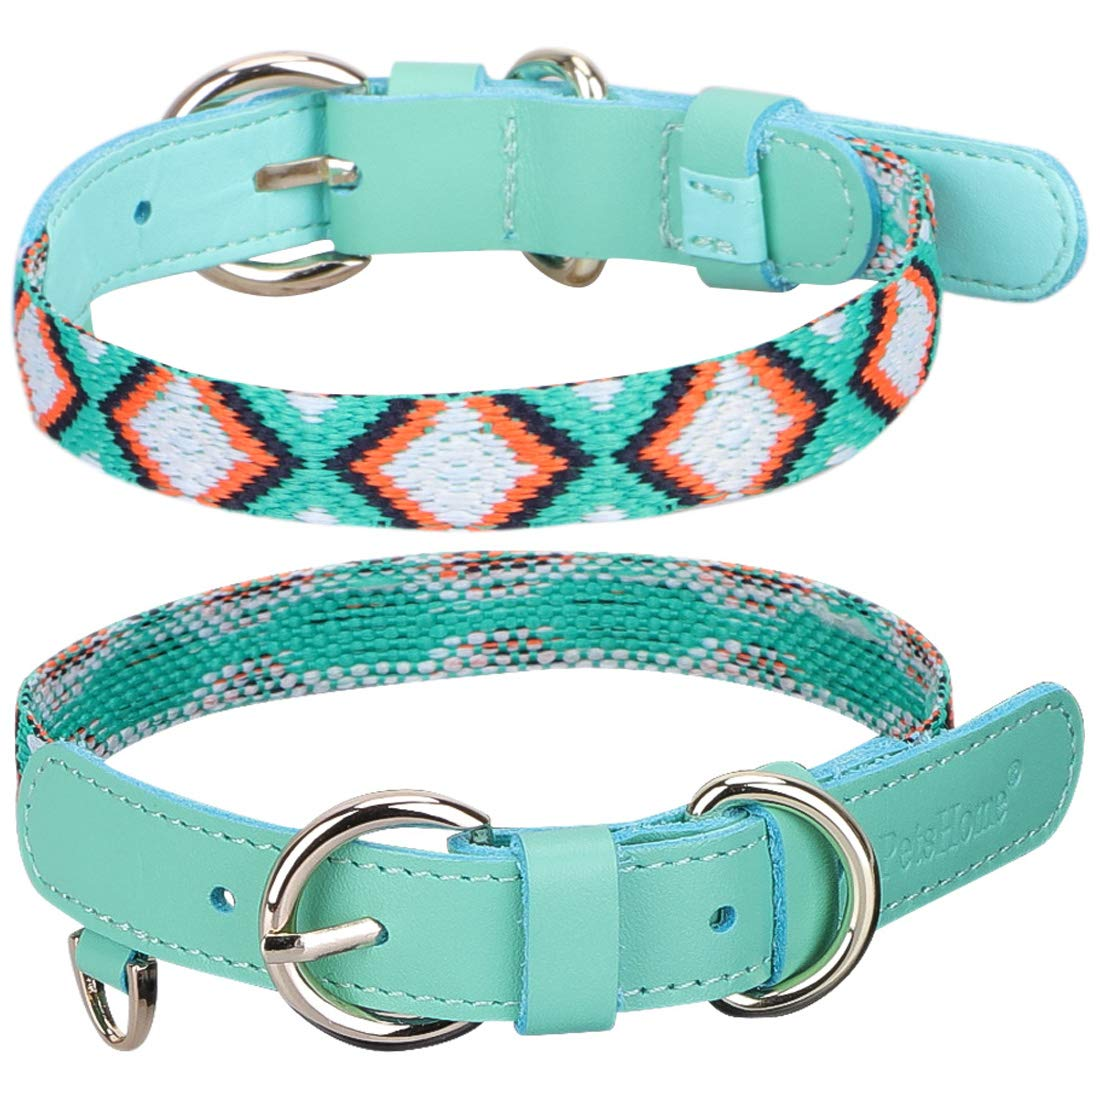 C-Mint Green S C-Mint Green S PetsHome Dog Collar, Cat Collar, [Genuine Leather][colorful Canvas] Woven Belt Adjustable Collars for Small Dog and Cat Small Mint Green